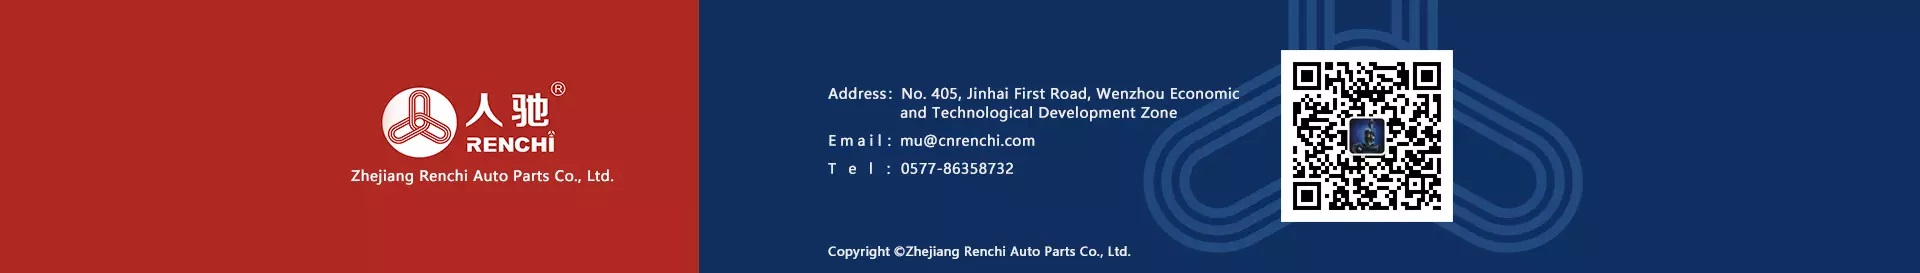 Zhejiang Renchi Auto Parts Co., Ltd.